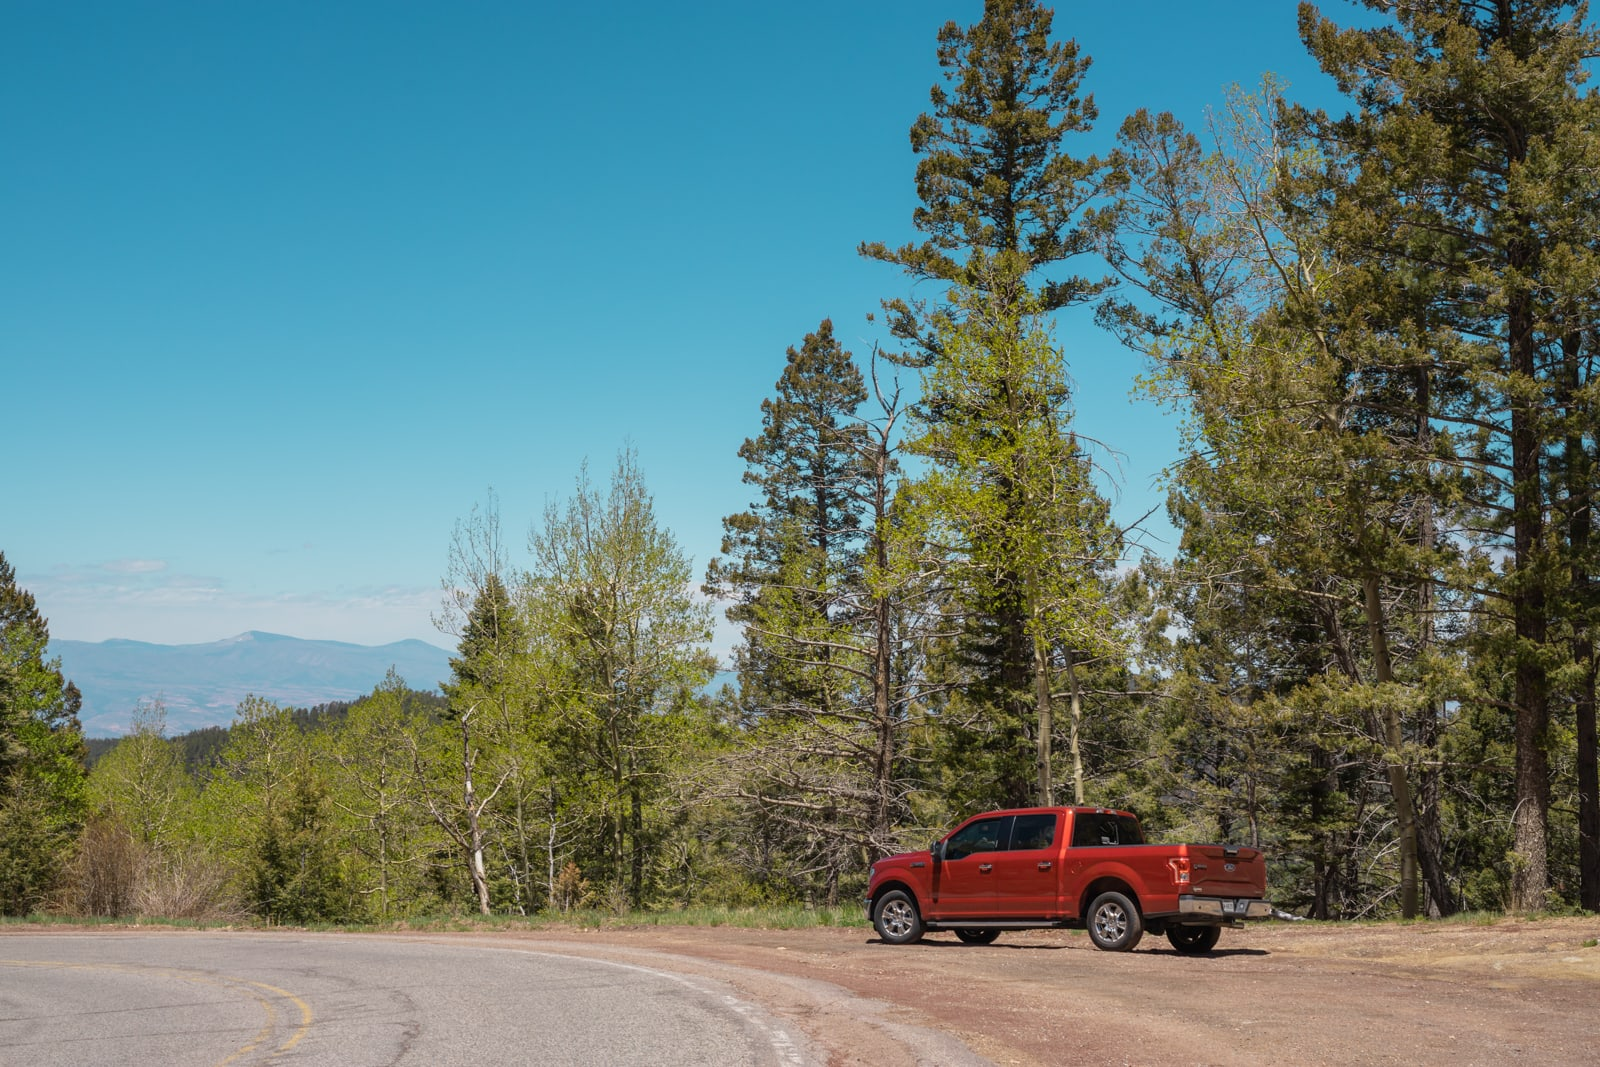 F-150 in the New Mexico mountains